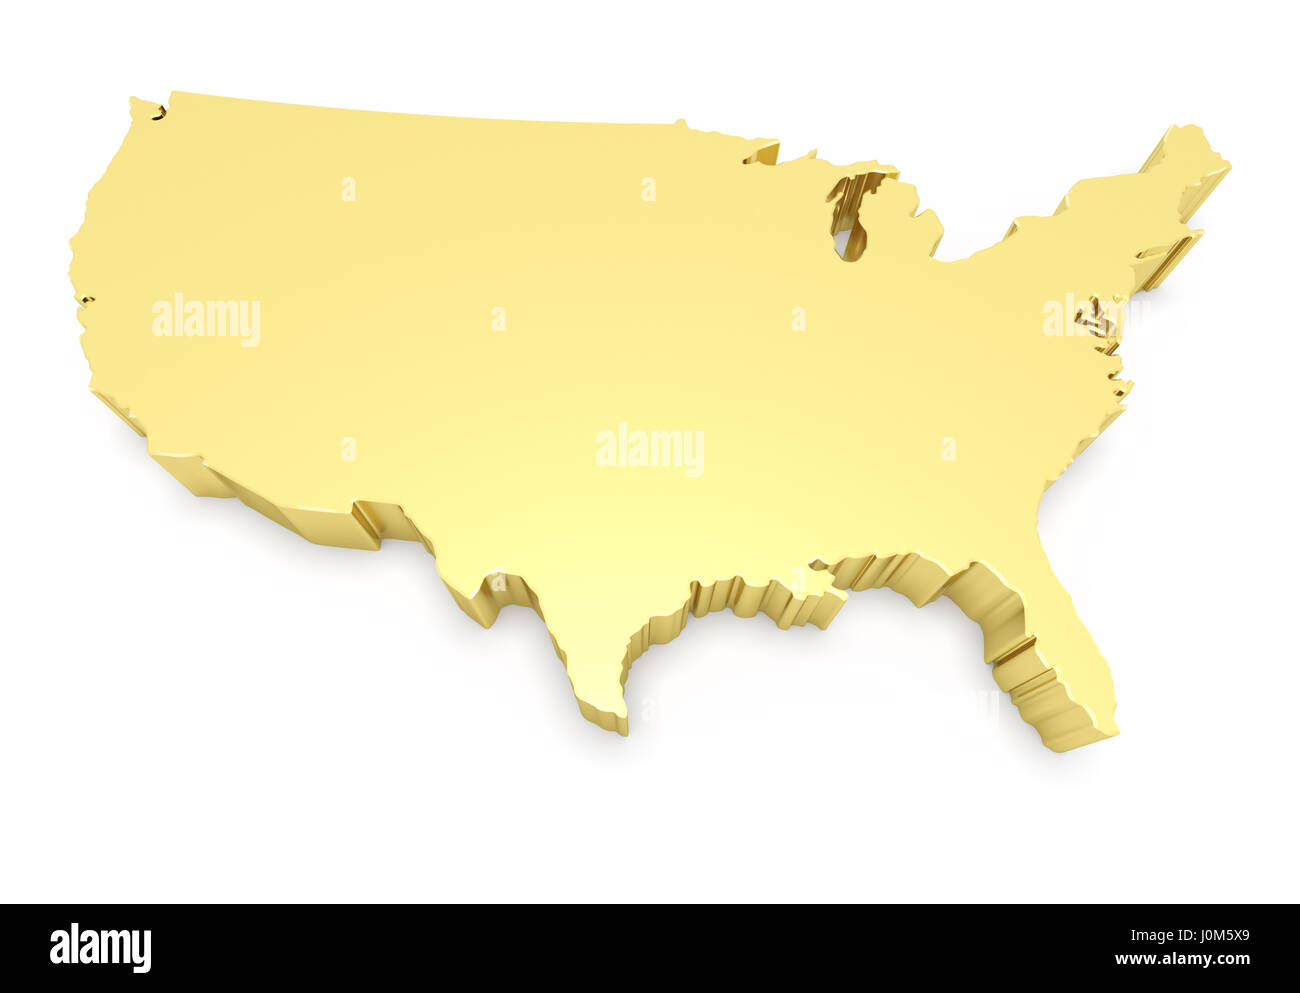 United States of America high resolution rendered golden map Stock